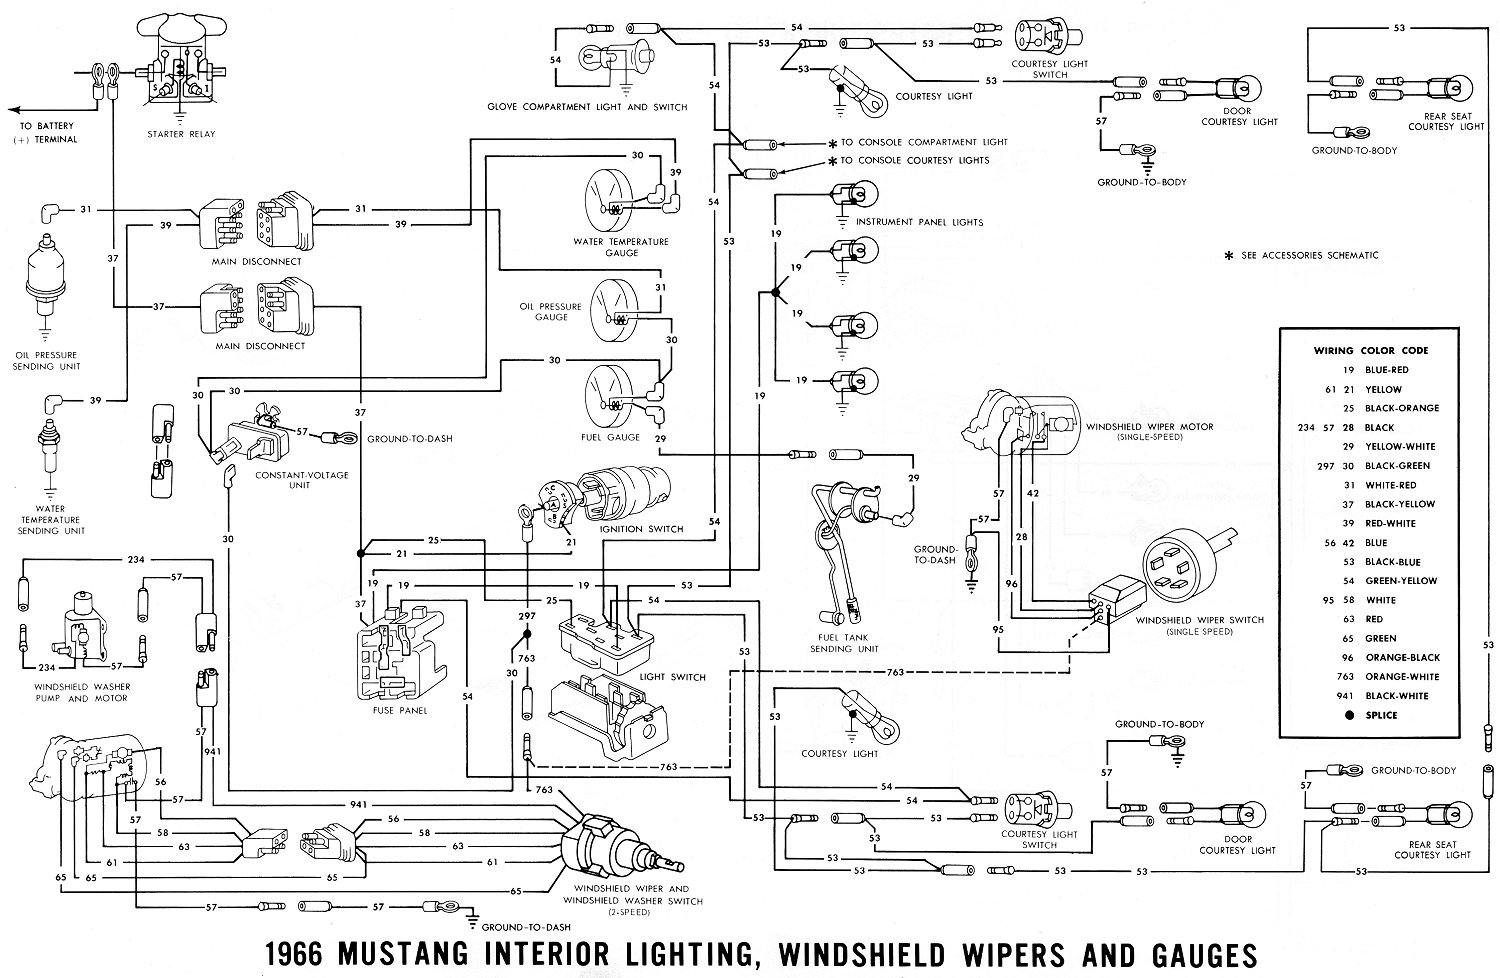 66inter1 1966 mustang wiring diagram 1966 mustang ignition wiring diagram 1965 ford mustang wiring diagrams at arjmand.co